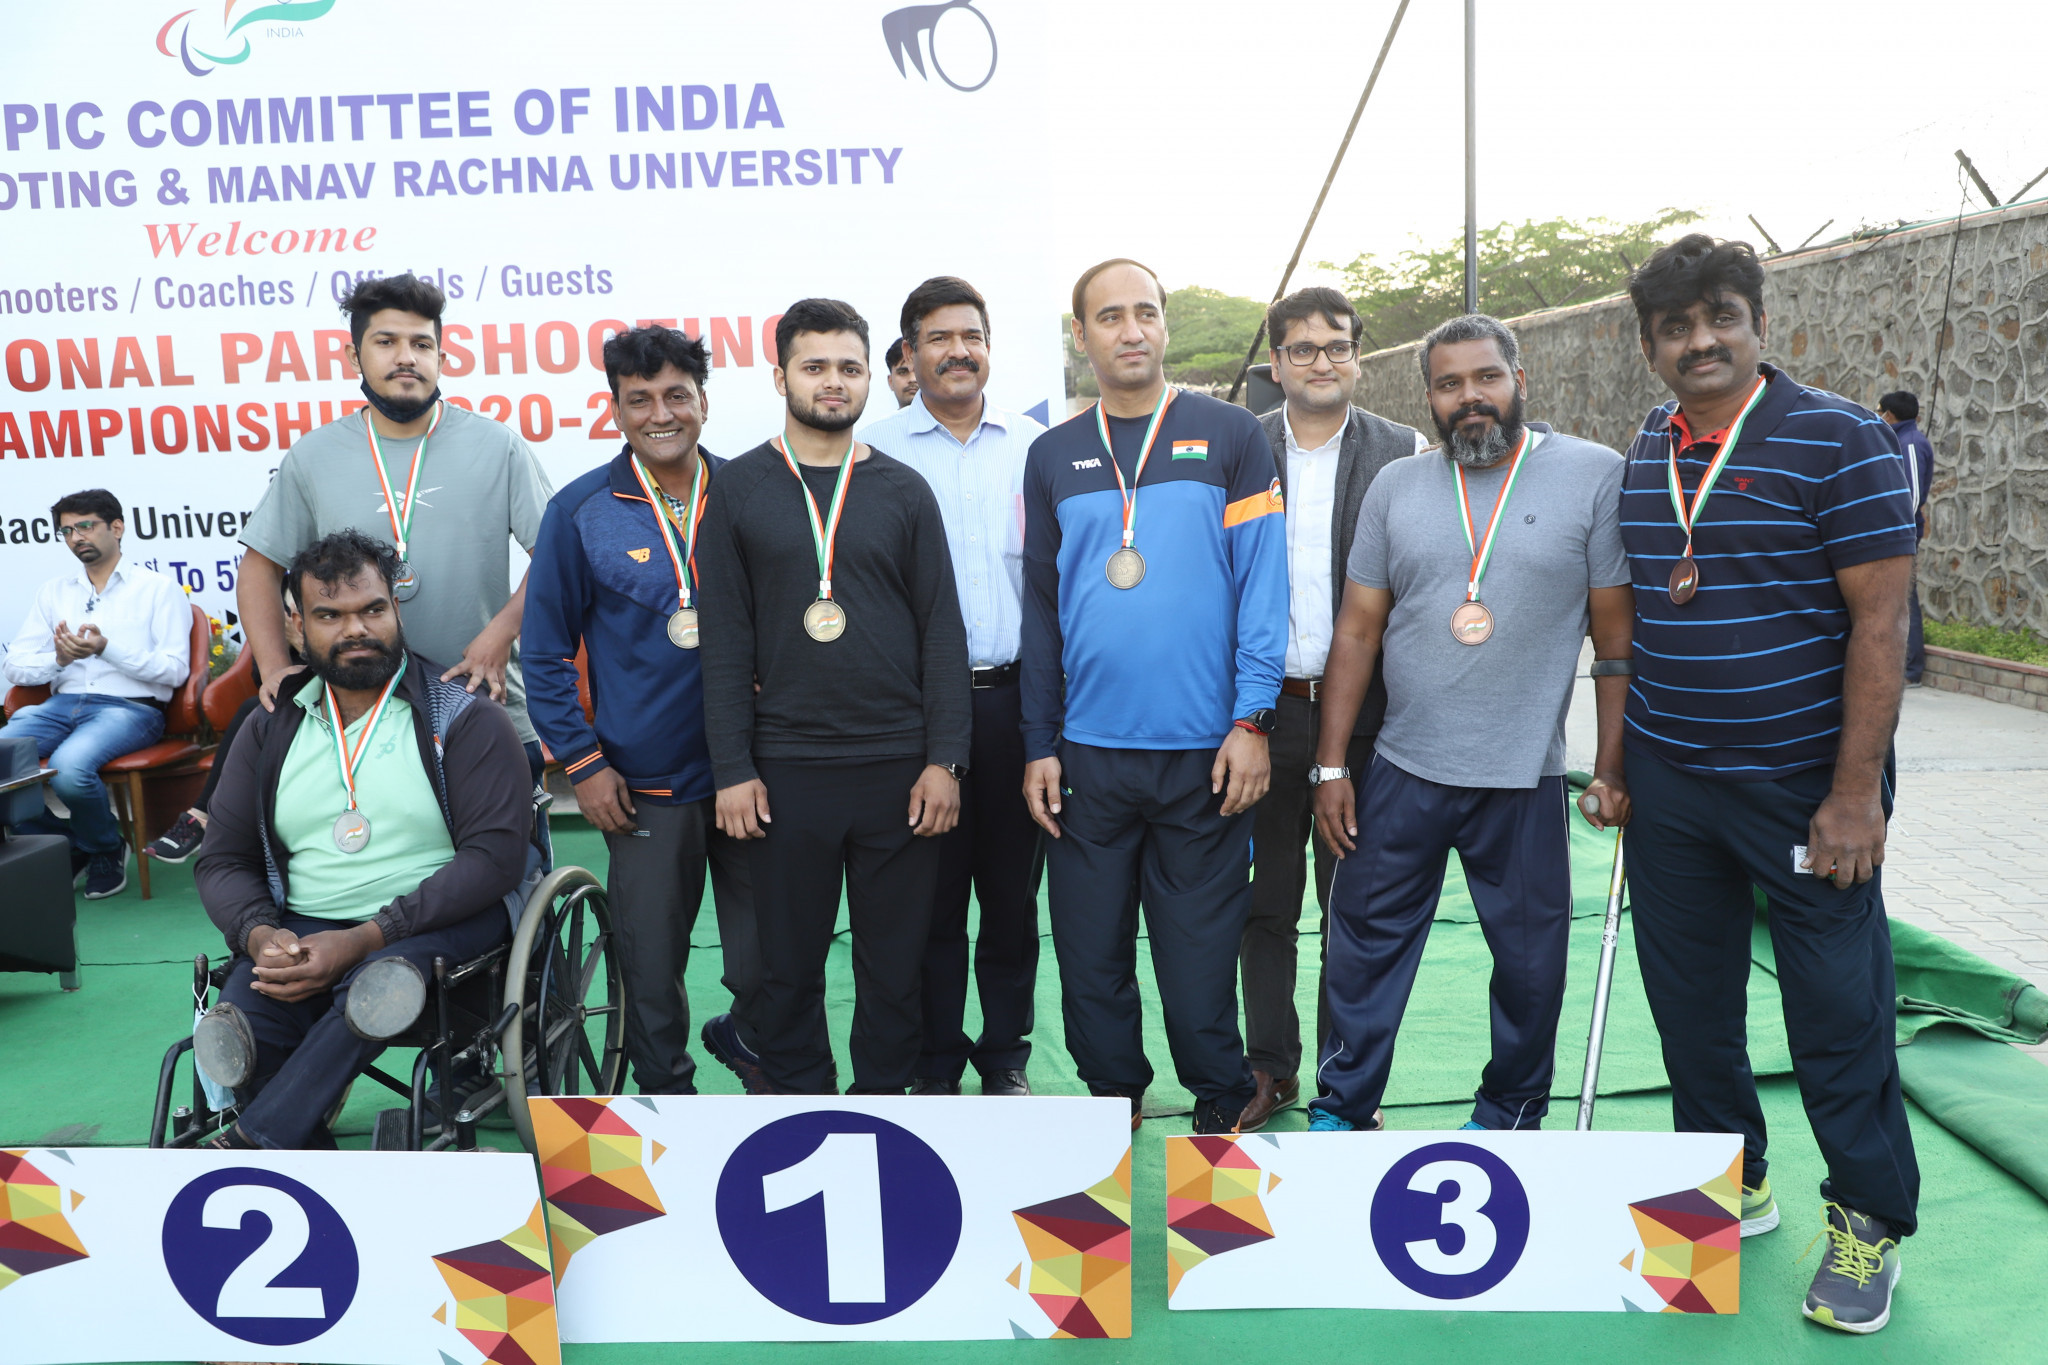 Indian Para-shooters Narwal and Lekhara win National Championship